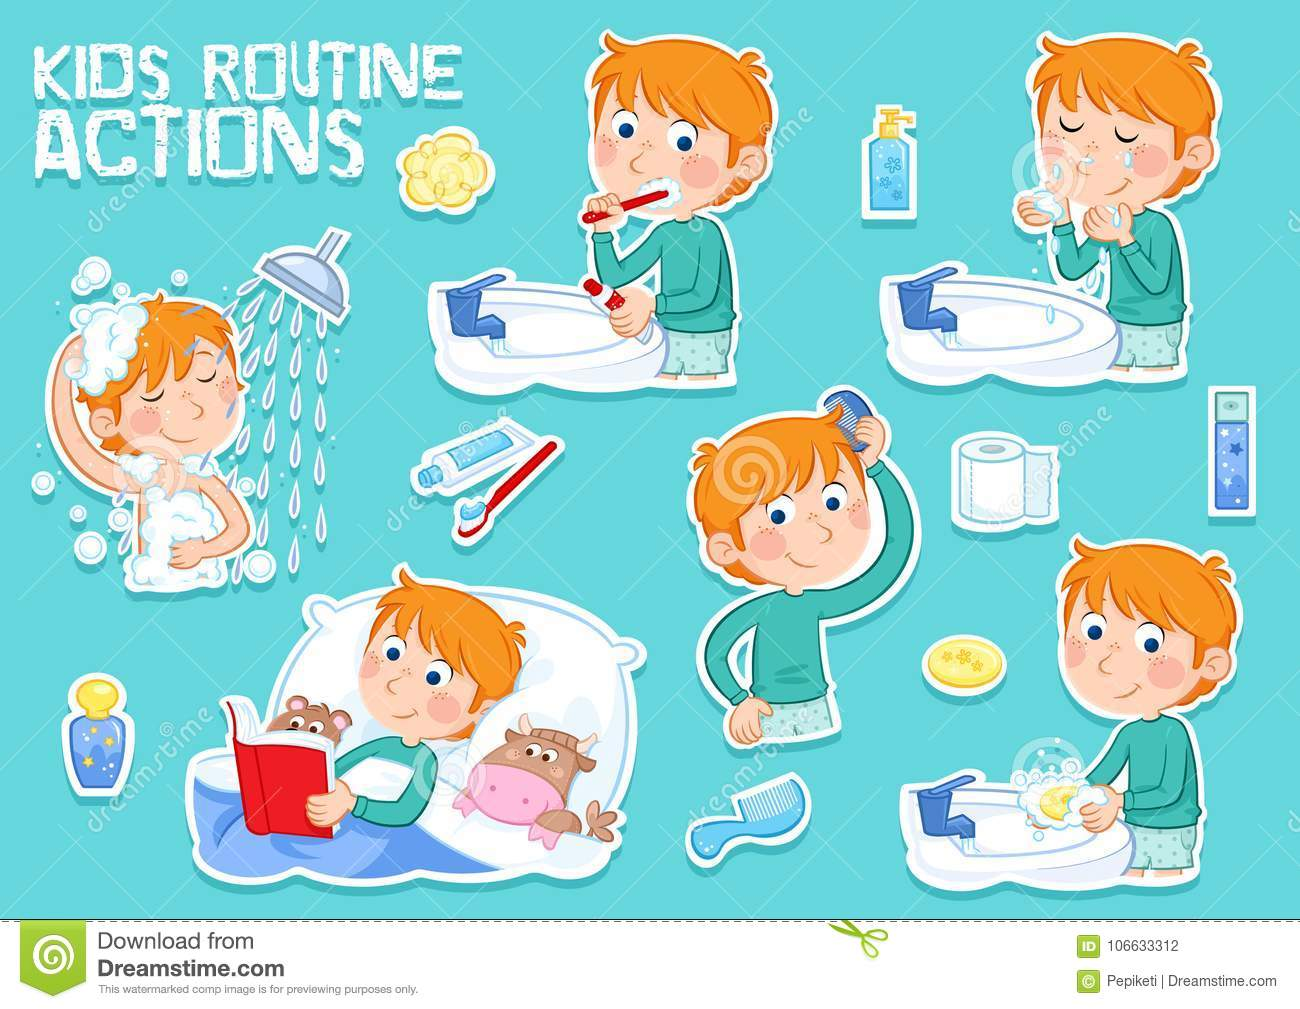 Ginger Desenho intended for bedtime story stock illustrations – 267 bedtime story stock